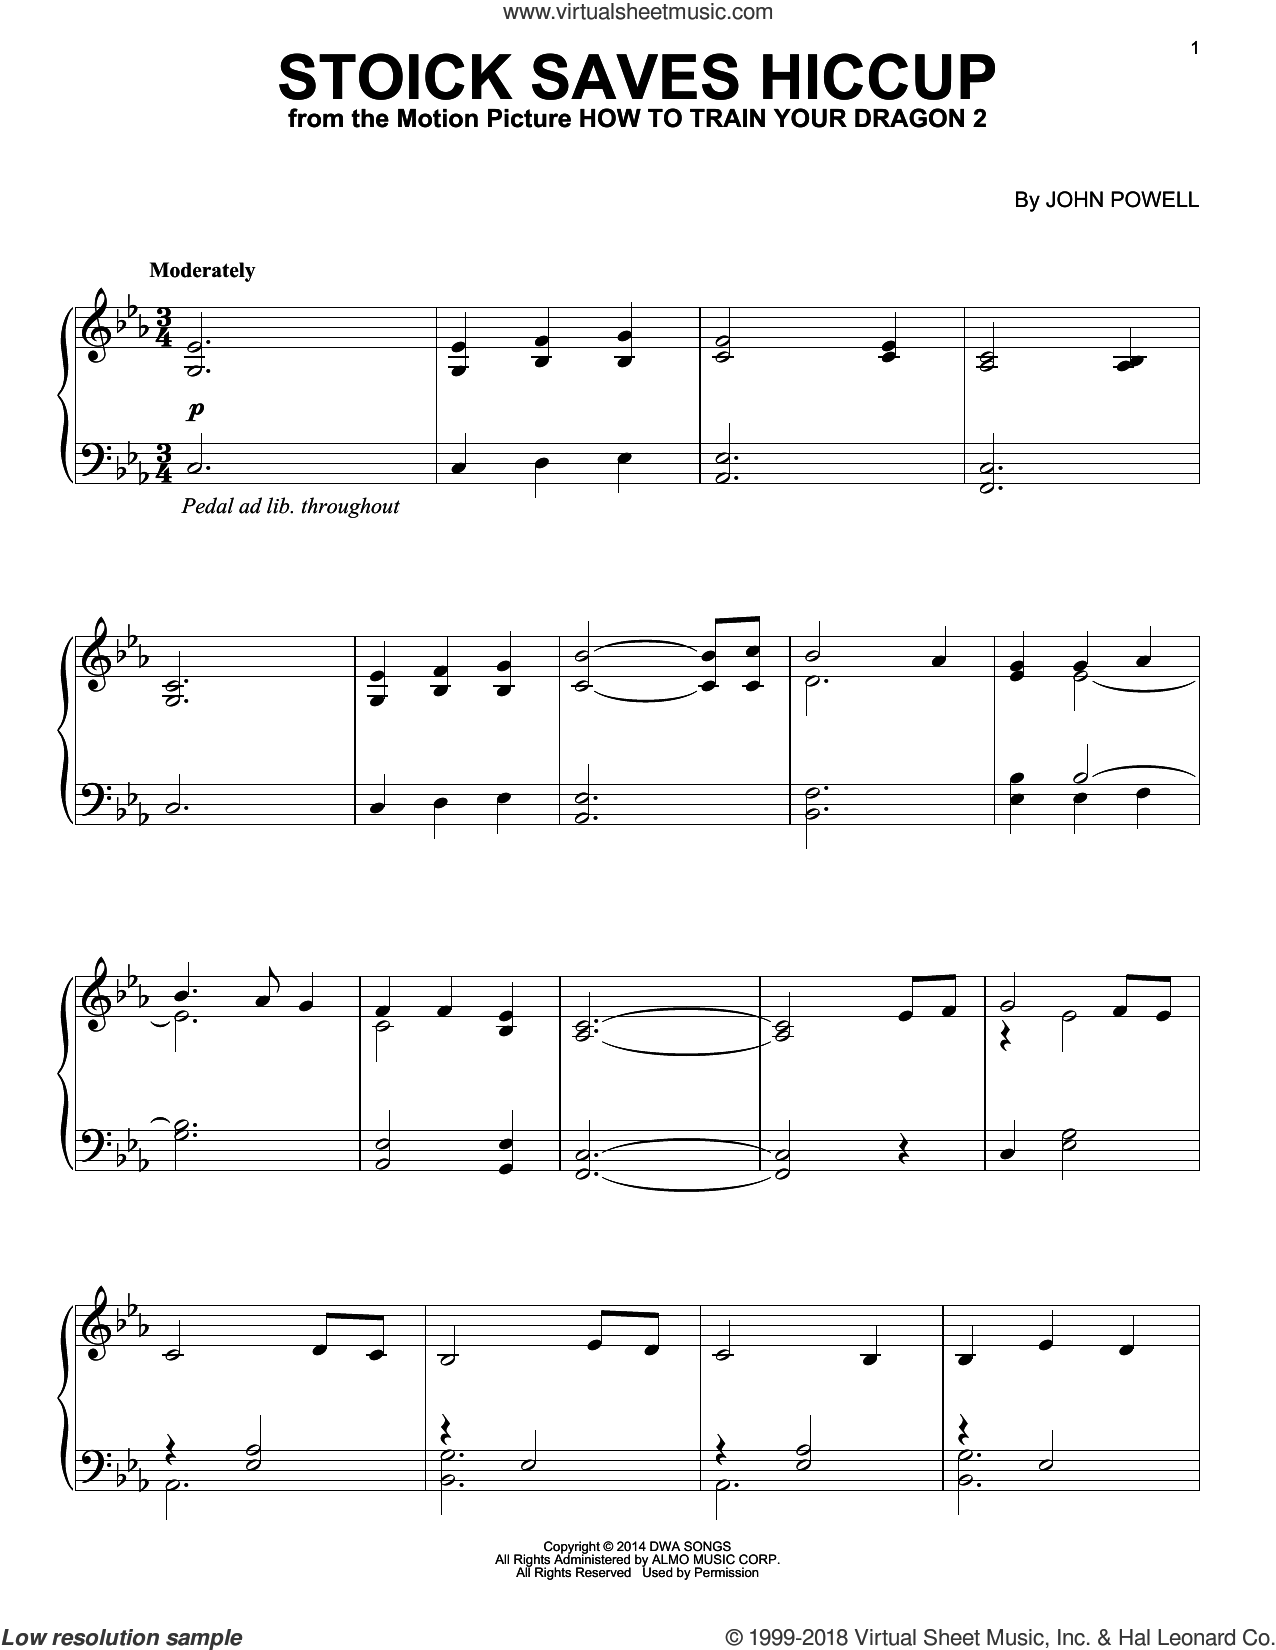 Stoick Saves Hiccup (from How to Train Your Dragon) sheet music for piano solo by John Powell, intermediate skill level